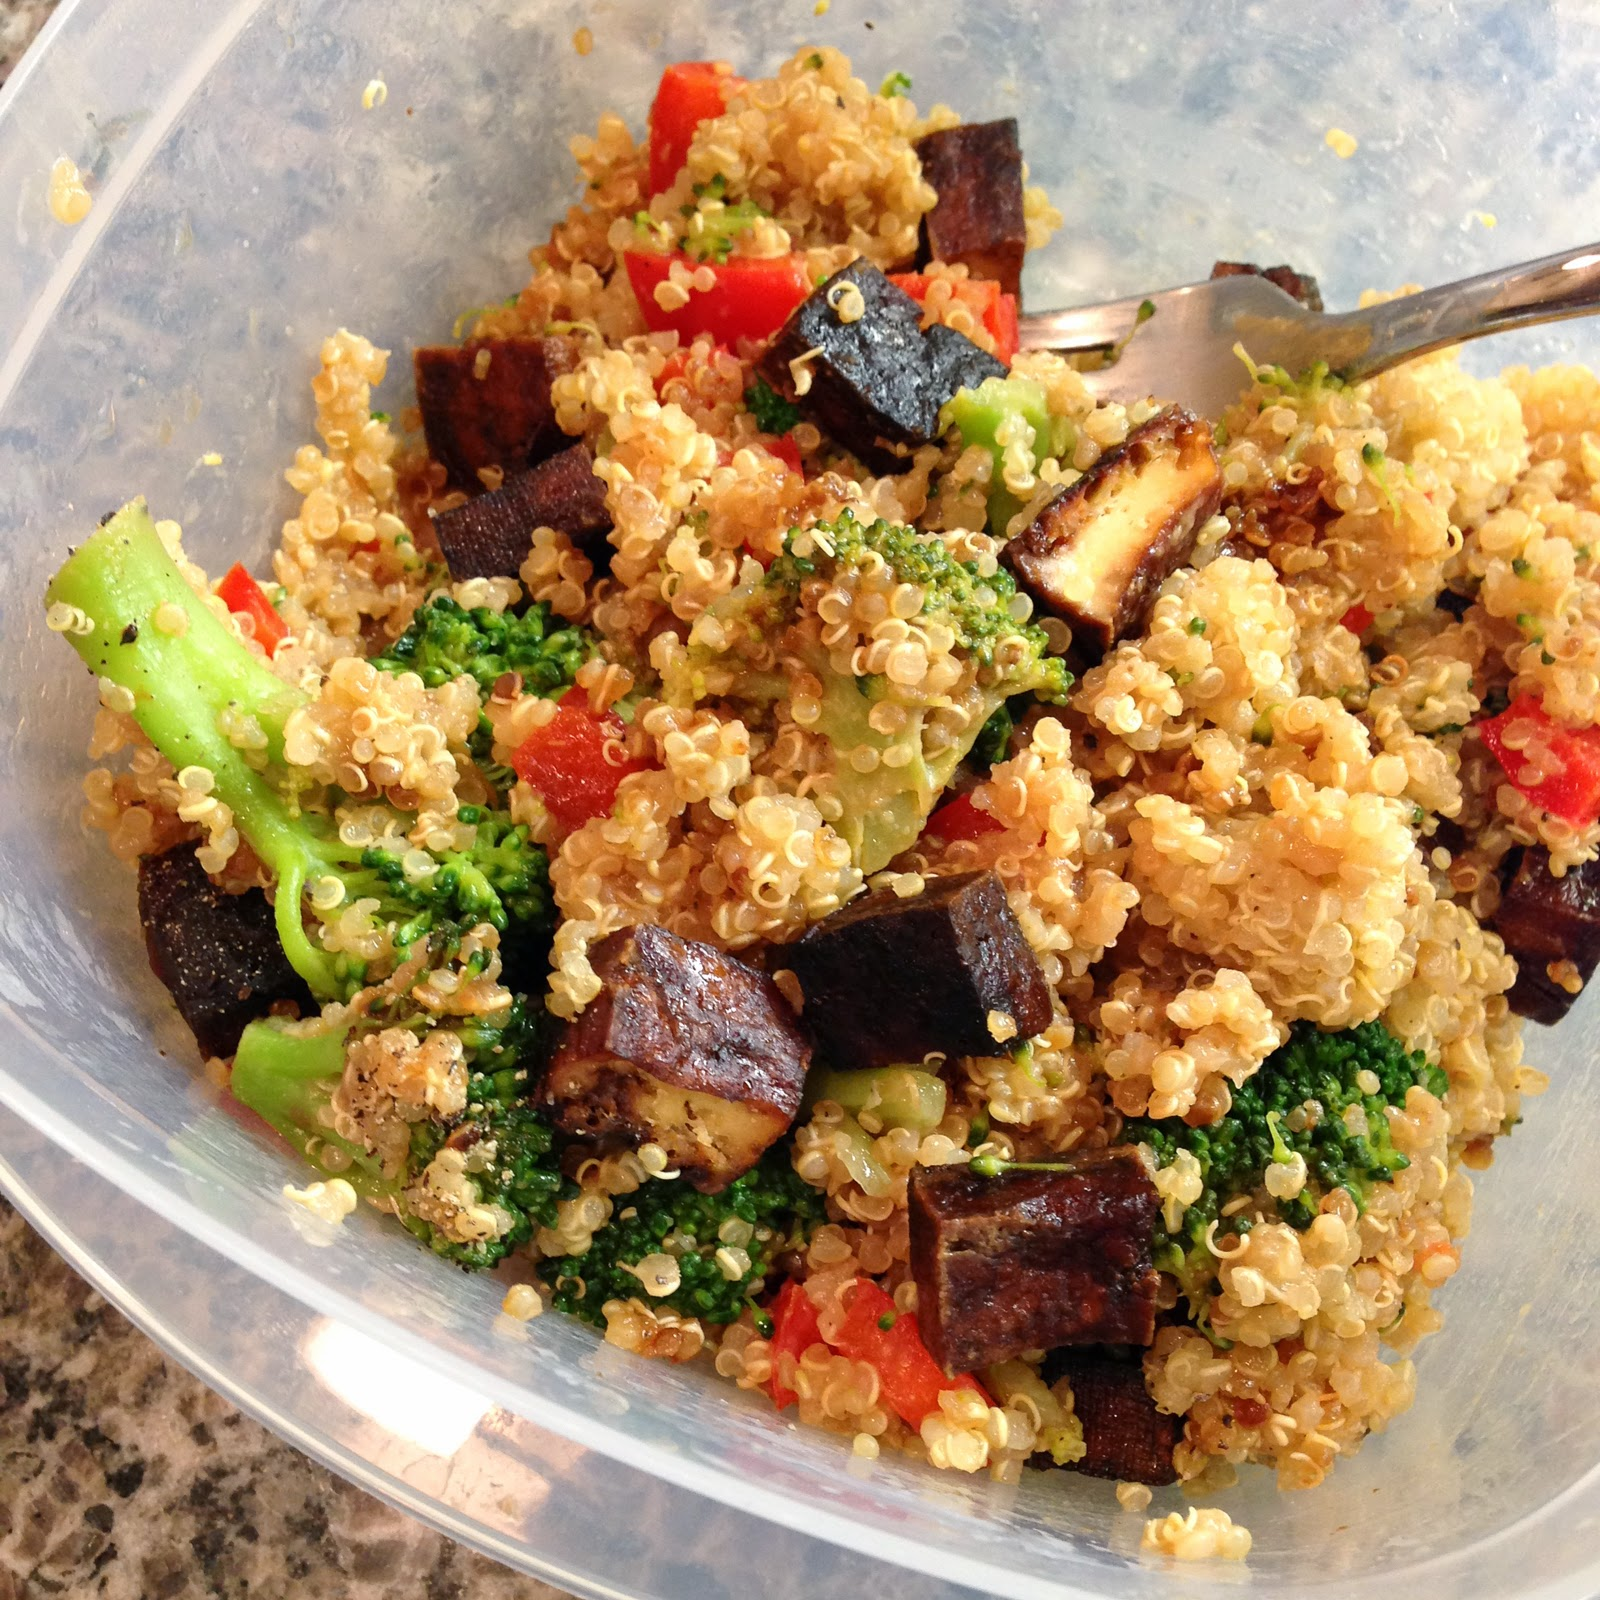 Peanutty Quinoa, Tofu, and Broccoli Bowls